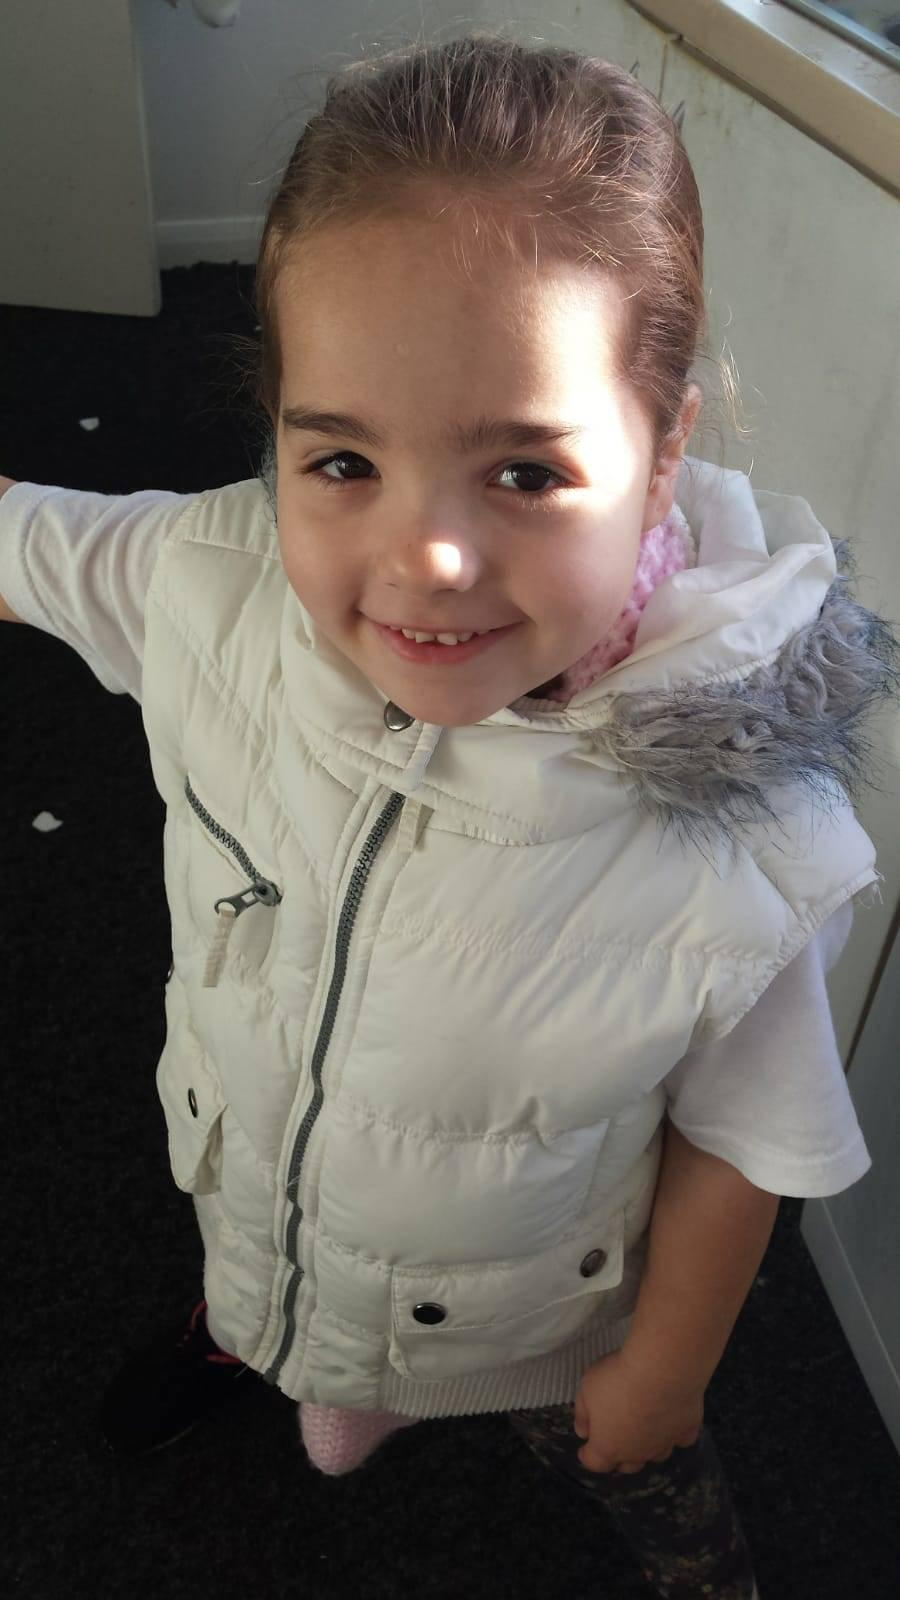 Seven-year-old Isabellaann Battiscombe died from a blood clot. Source: Media Wales/Australscope